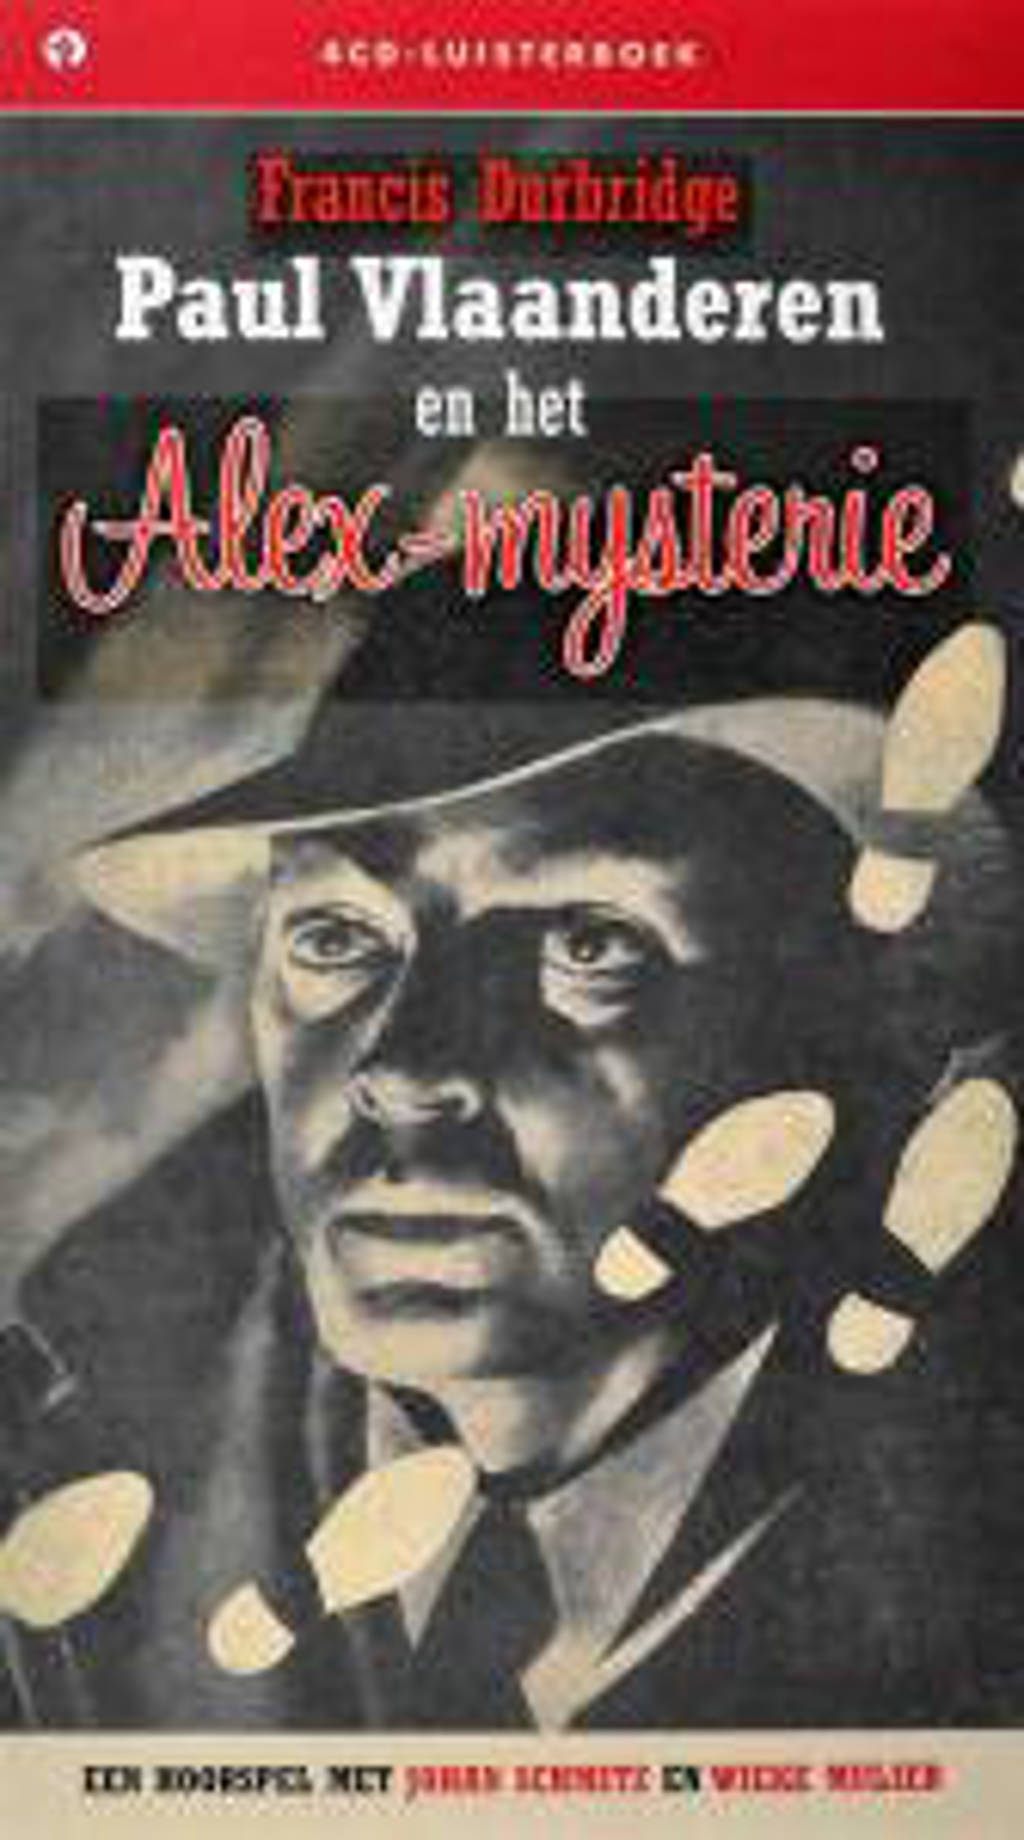 Francis Durbridge - Paul Vlaanderenen Het Alex-Mysterie (CD)